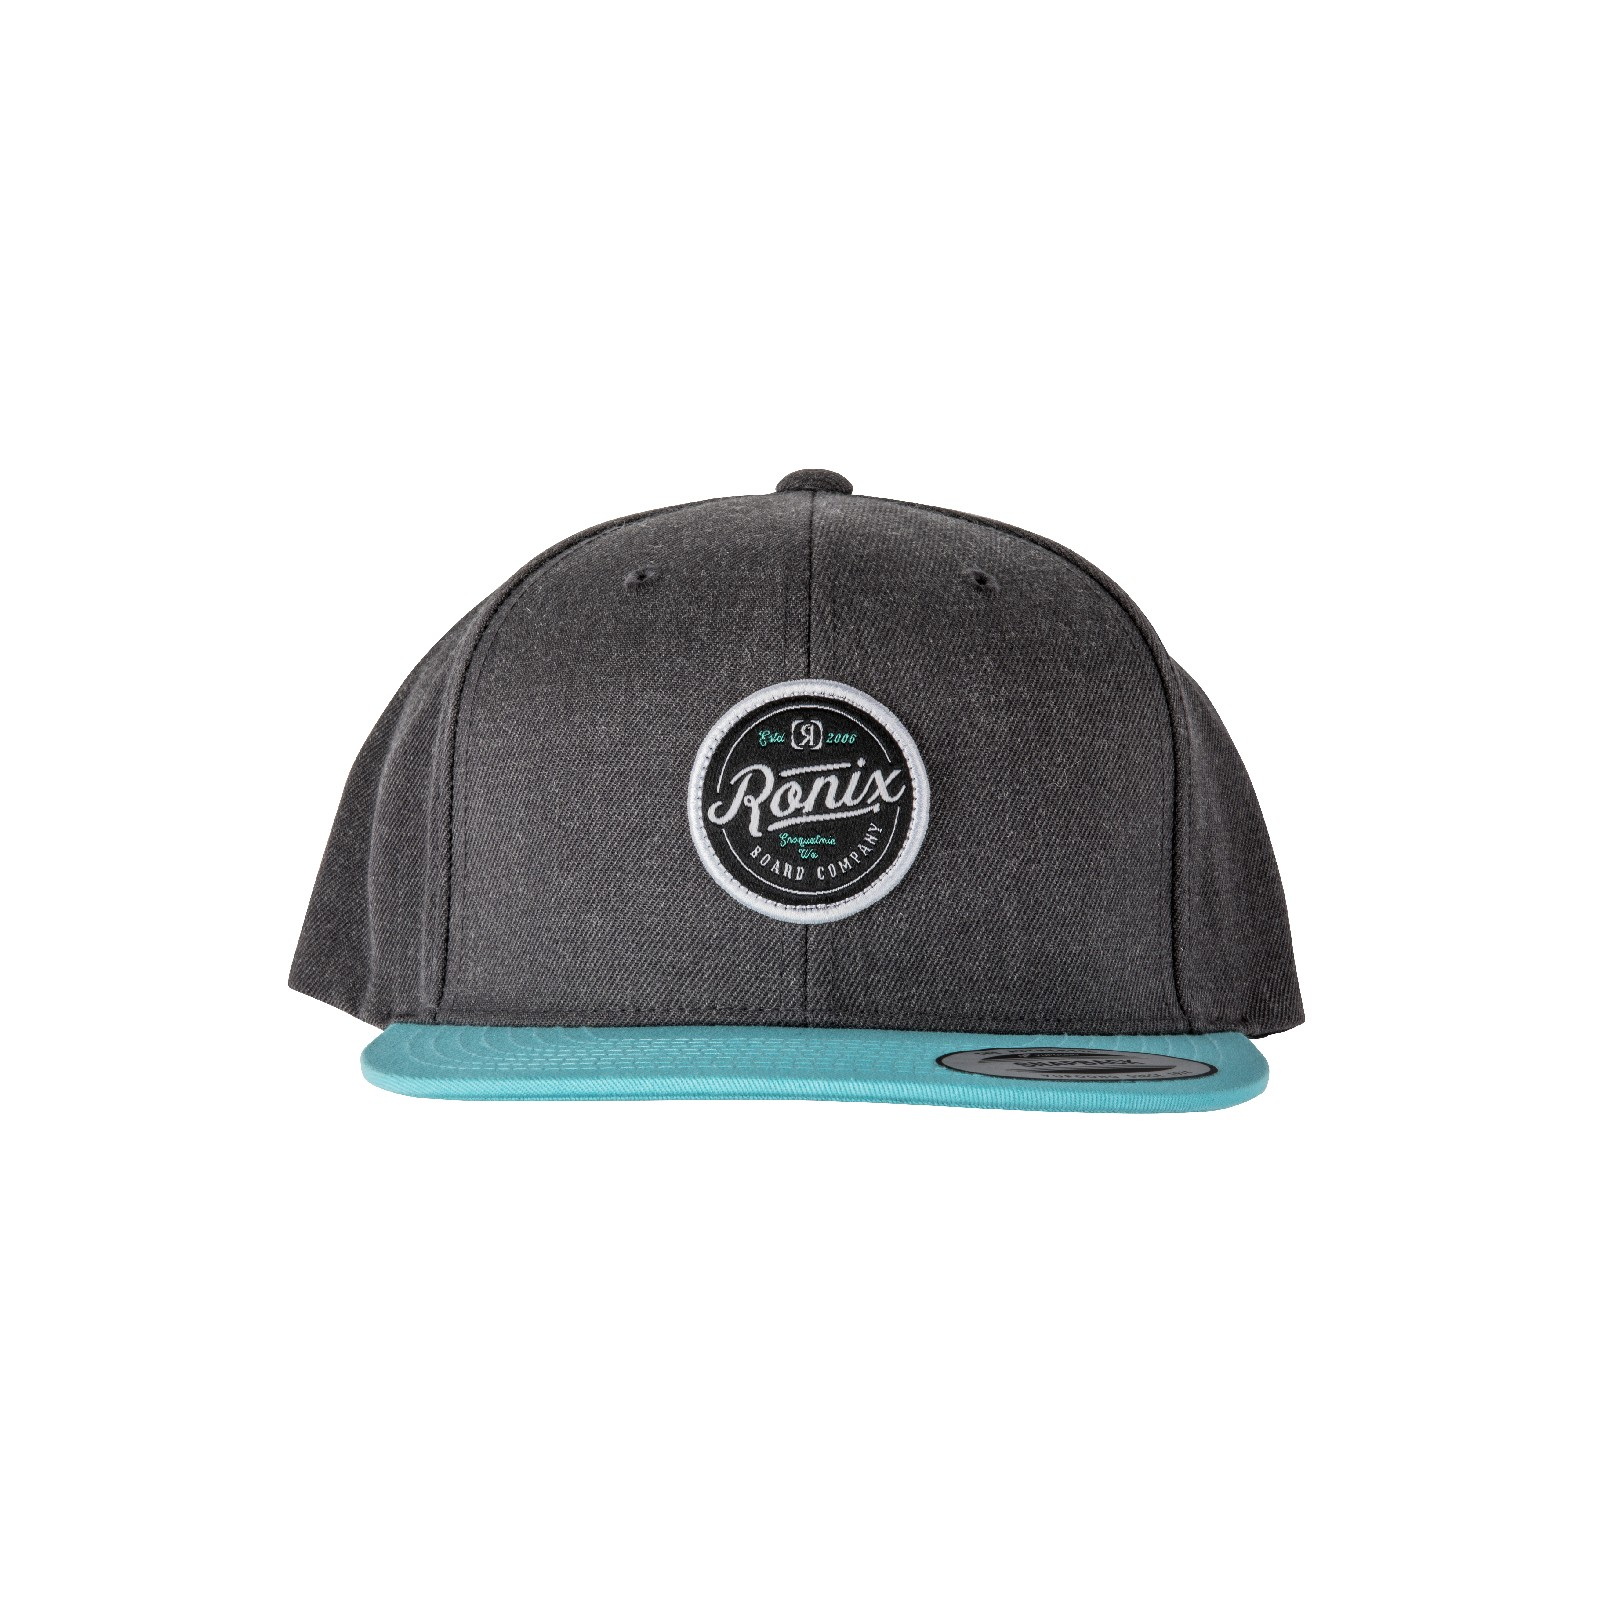 MARIANO 6 PANEL SNAP BACK HAT RONIX 2019